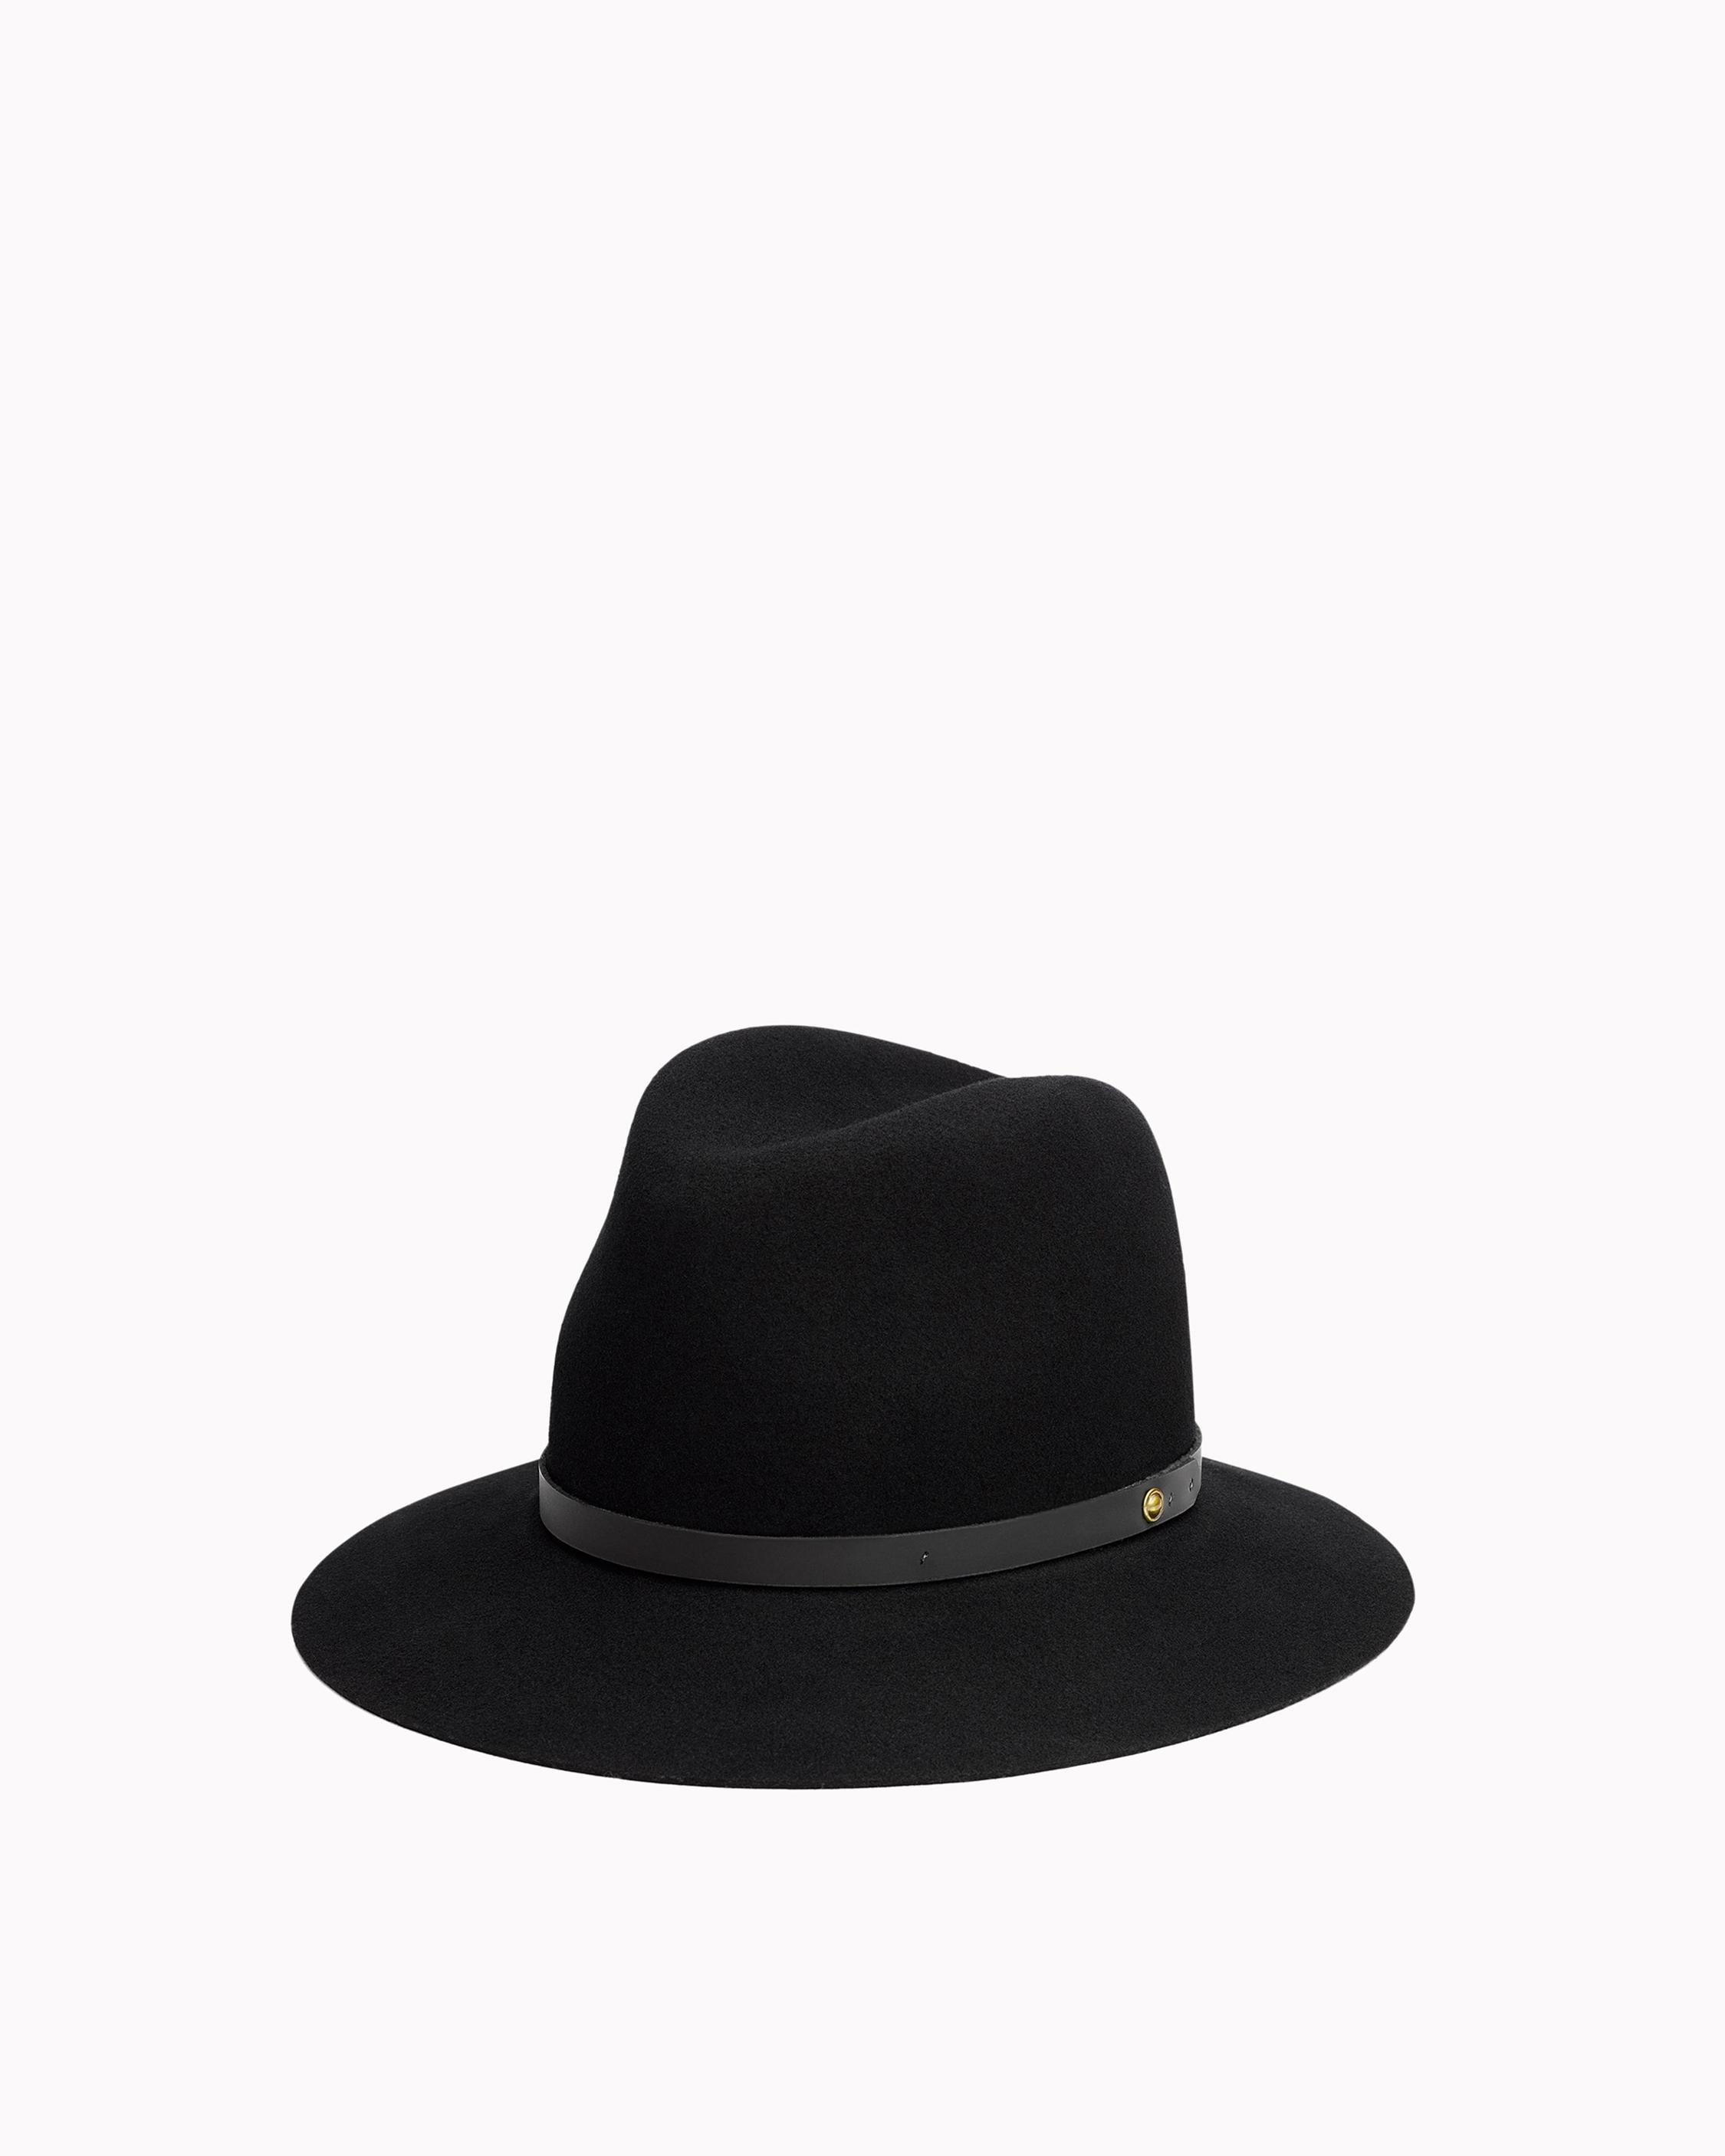 Images. FLOPPY BRIM FEDORA Image description 6b65cacbbb8